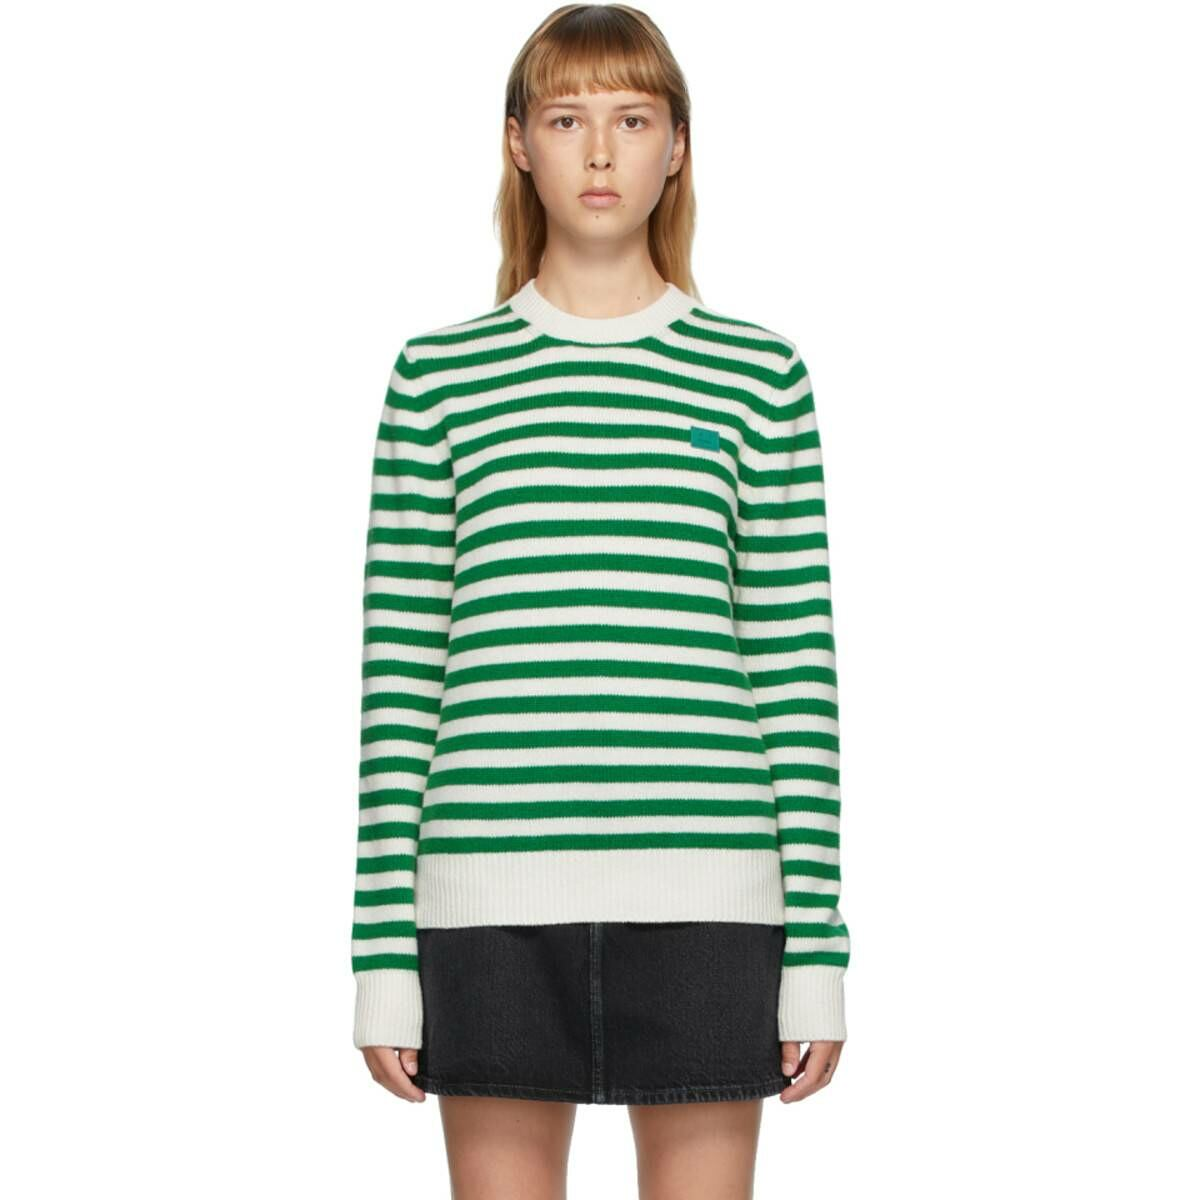 Acne Studios Green and White Breton Stripe Sweater Ssense USA WOMEN Women FASHION Womens KNITWEAR